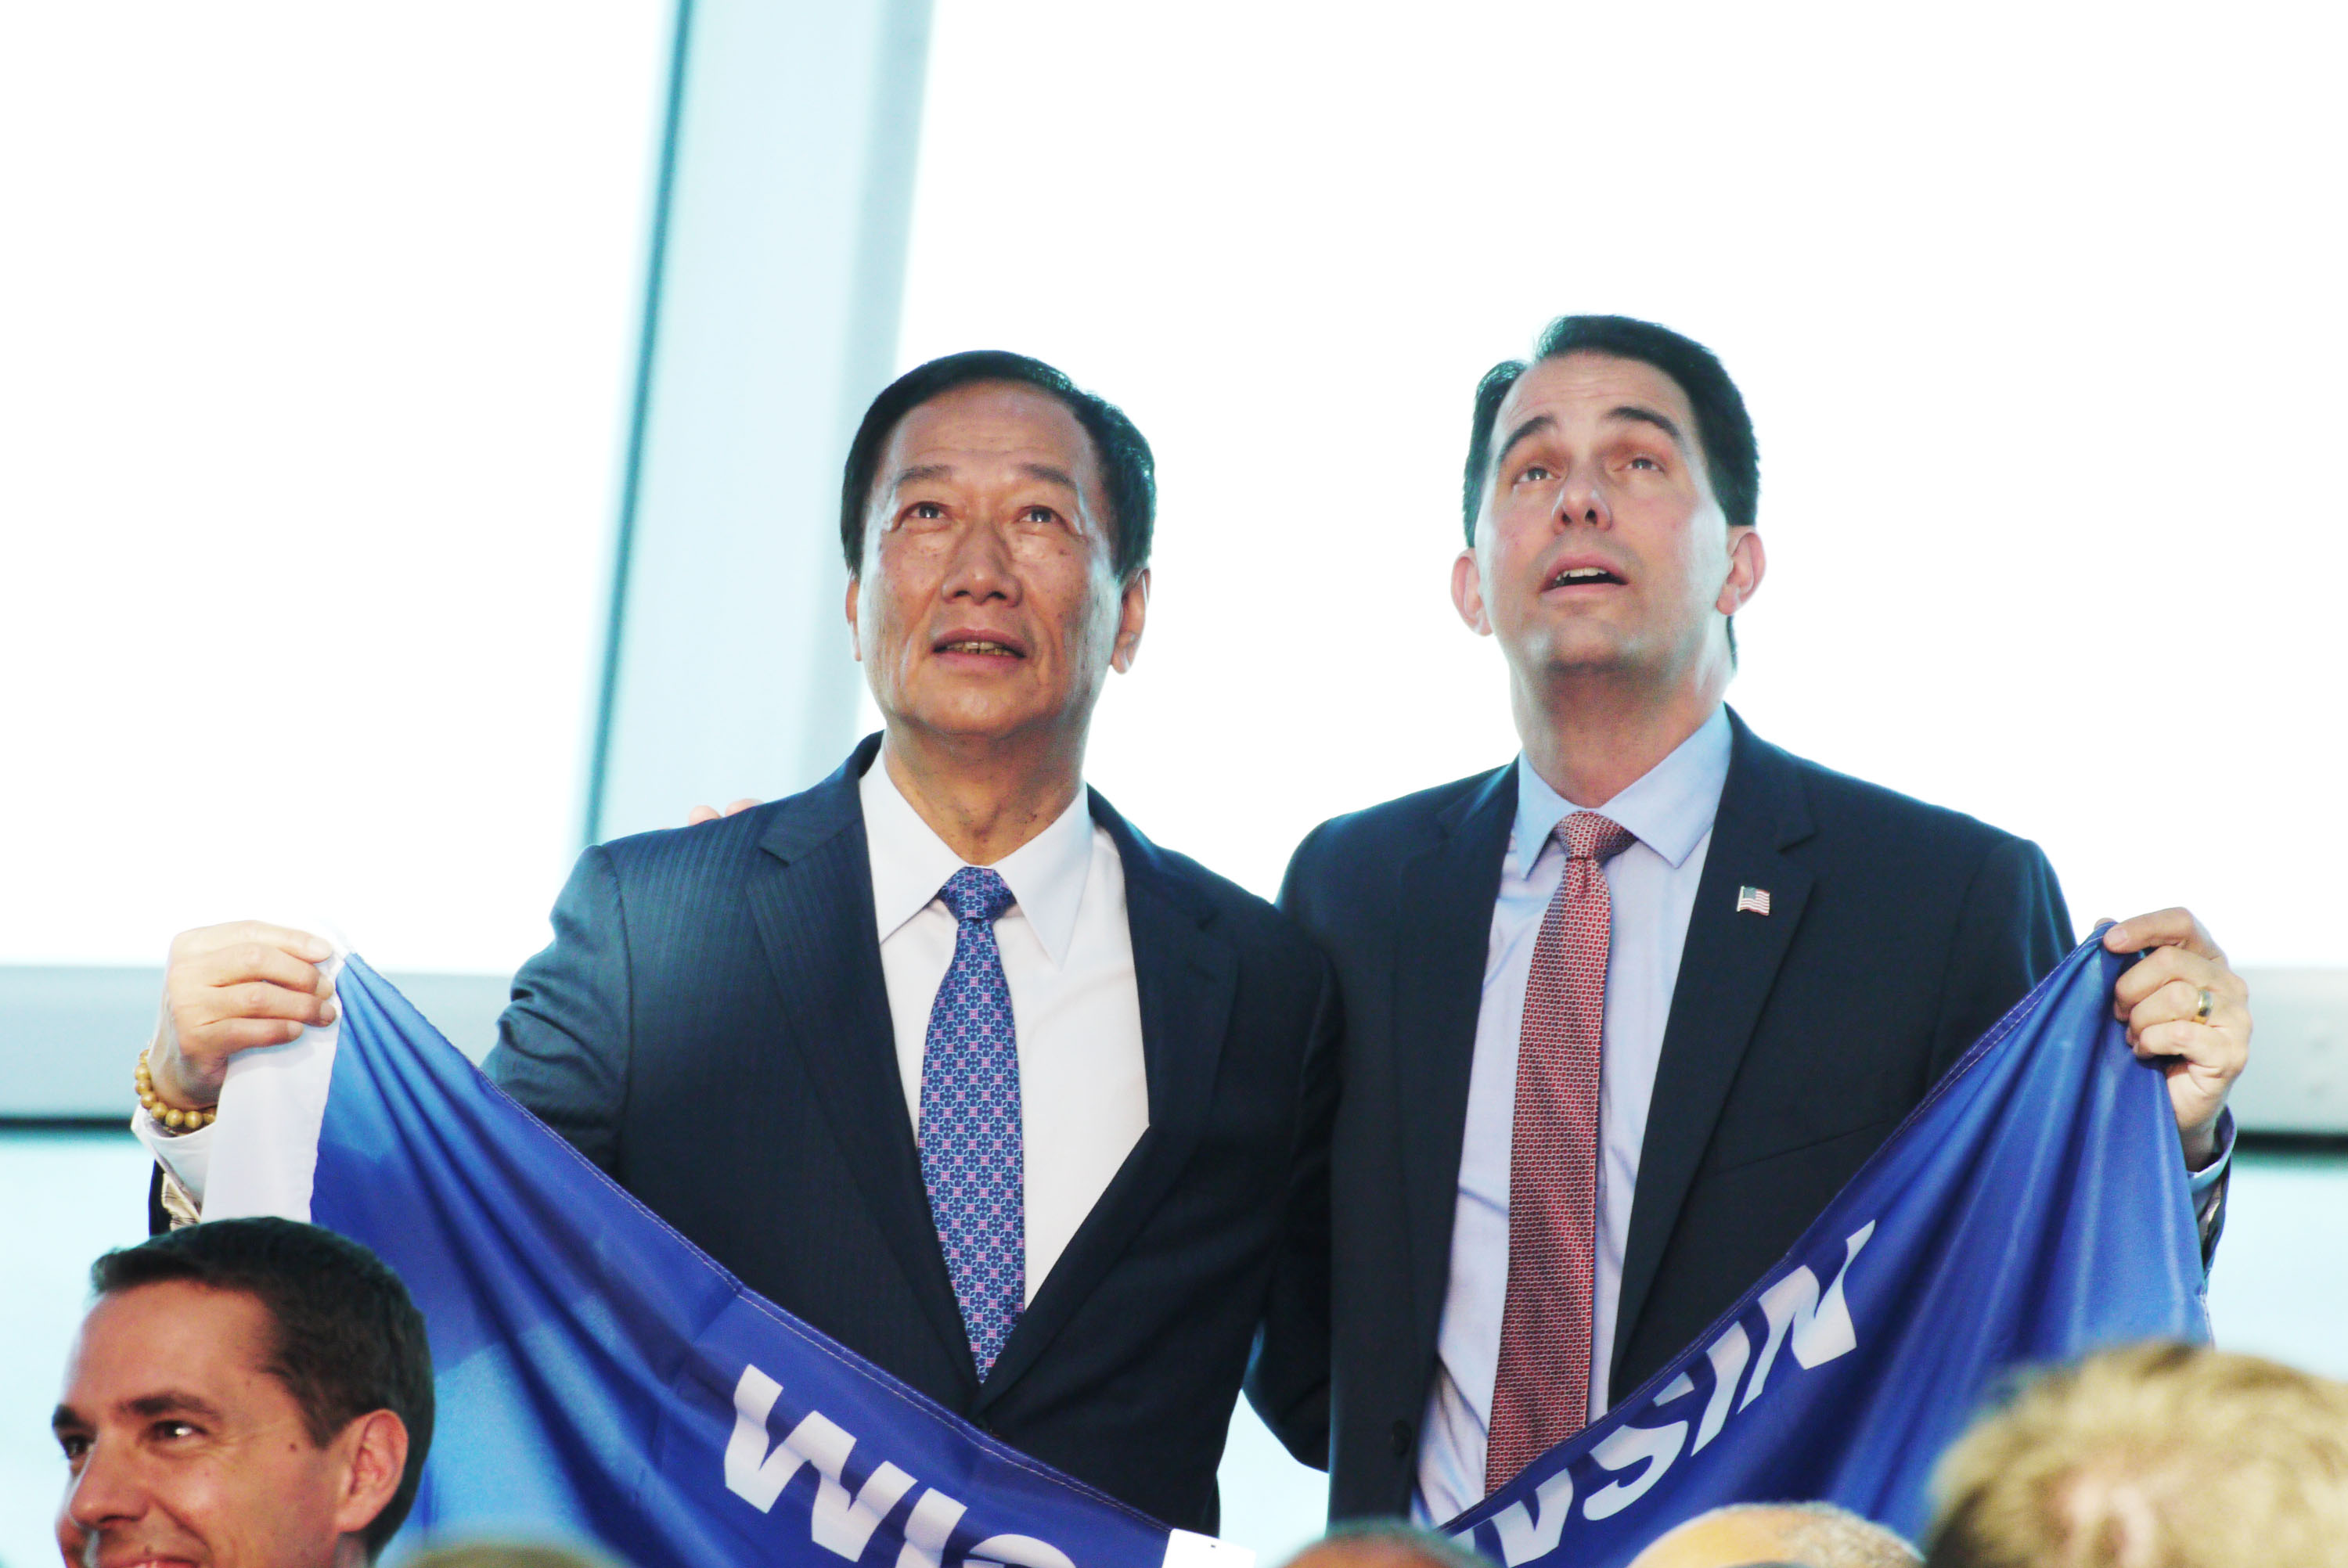 Foxconn chief Terry Gou (left) with Wisconsin Governor Scott Walker.